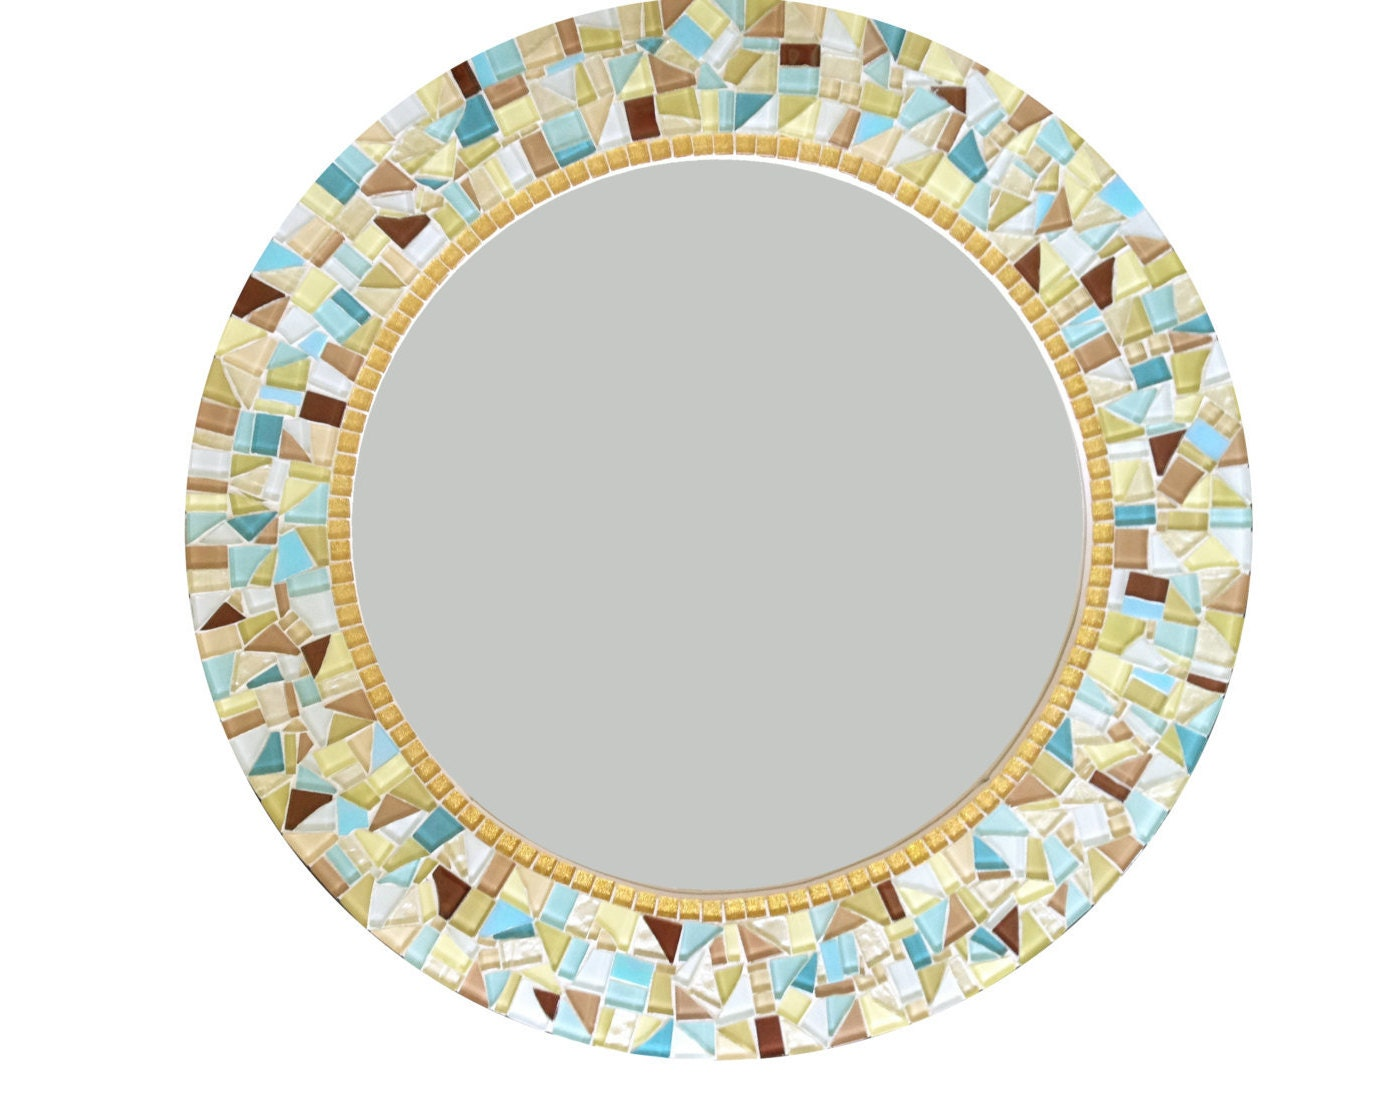 Wall mirror round mosaic mirror decorative mirror zoom amipublicfo Image collections